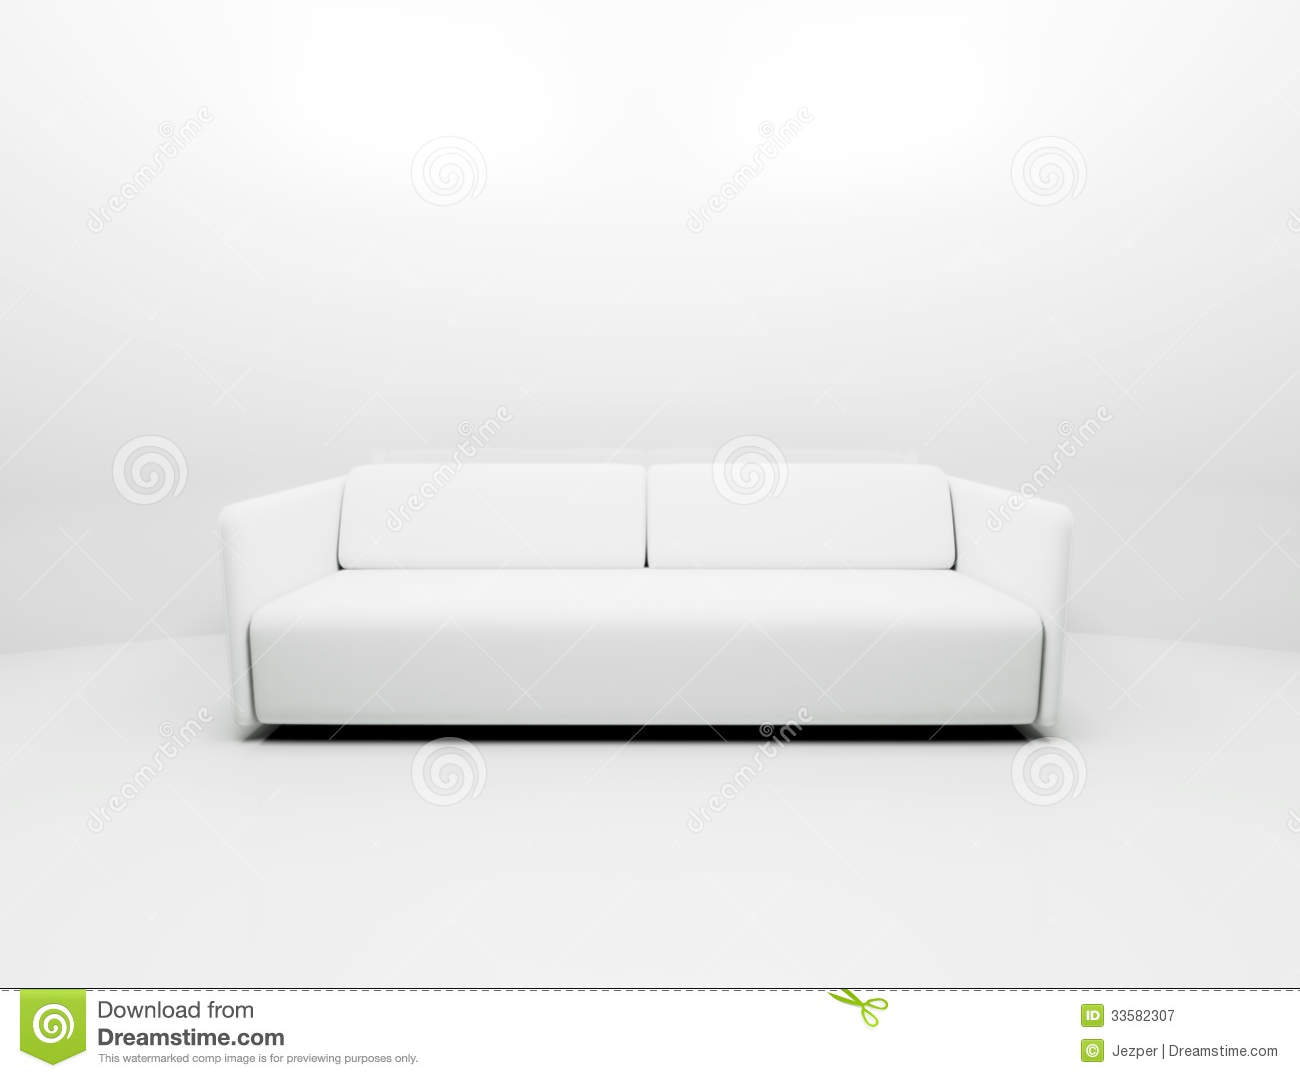 einzelne wei e couch lizenzfreie stockfotografie bild 33582307. Black Bedroom Furniture Sets. Home Design Ideas